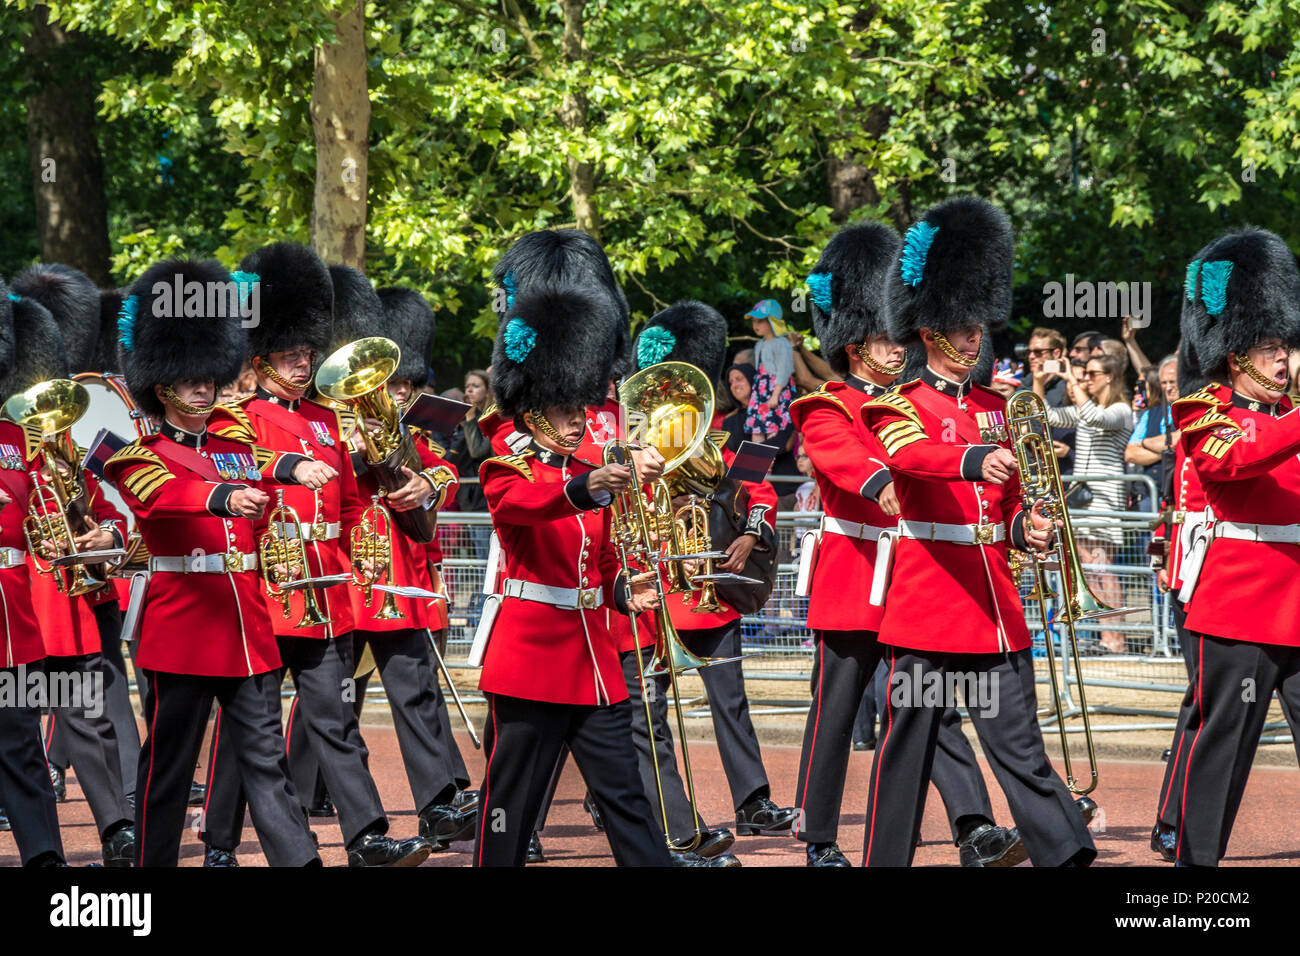 Massed Bands of The Foot Guards marching along the Mall at The Trooping Of The Colour /Queens Birthday parade 2018 - Stock Image